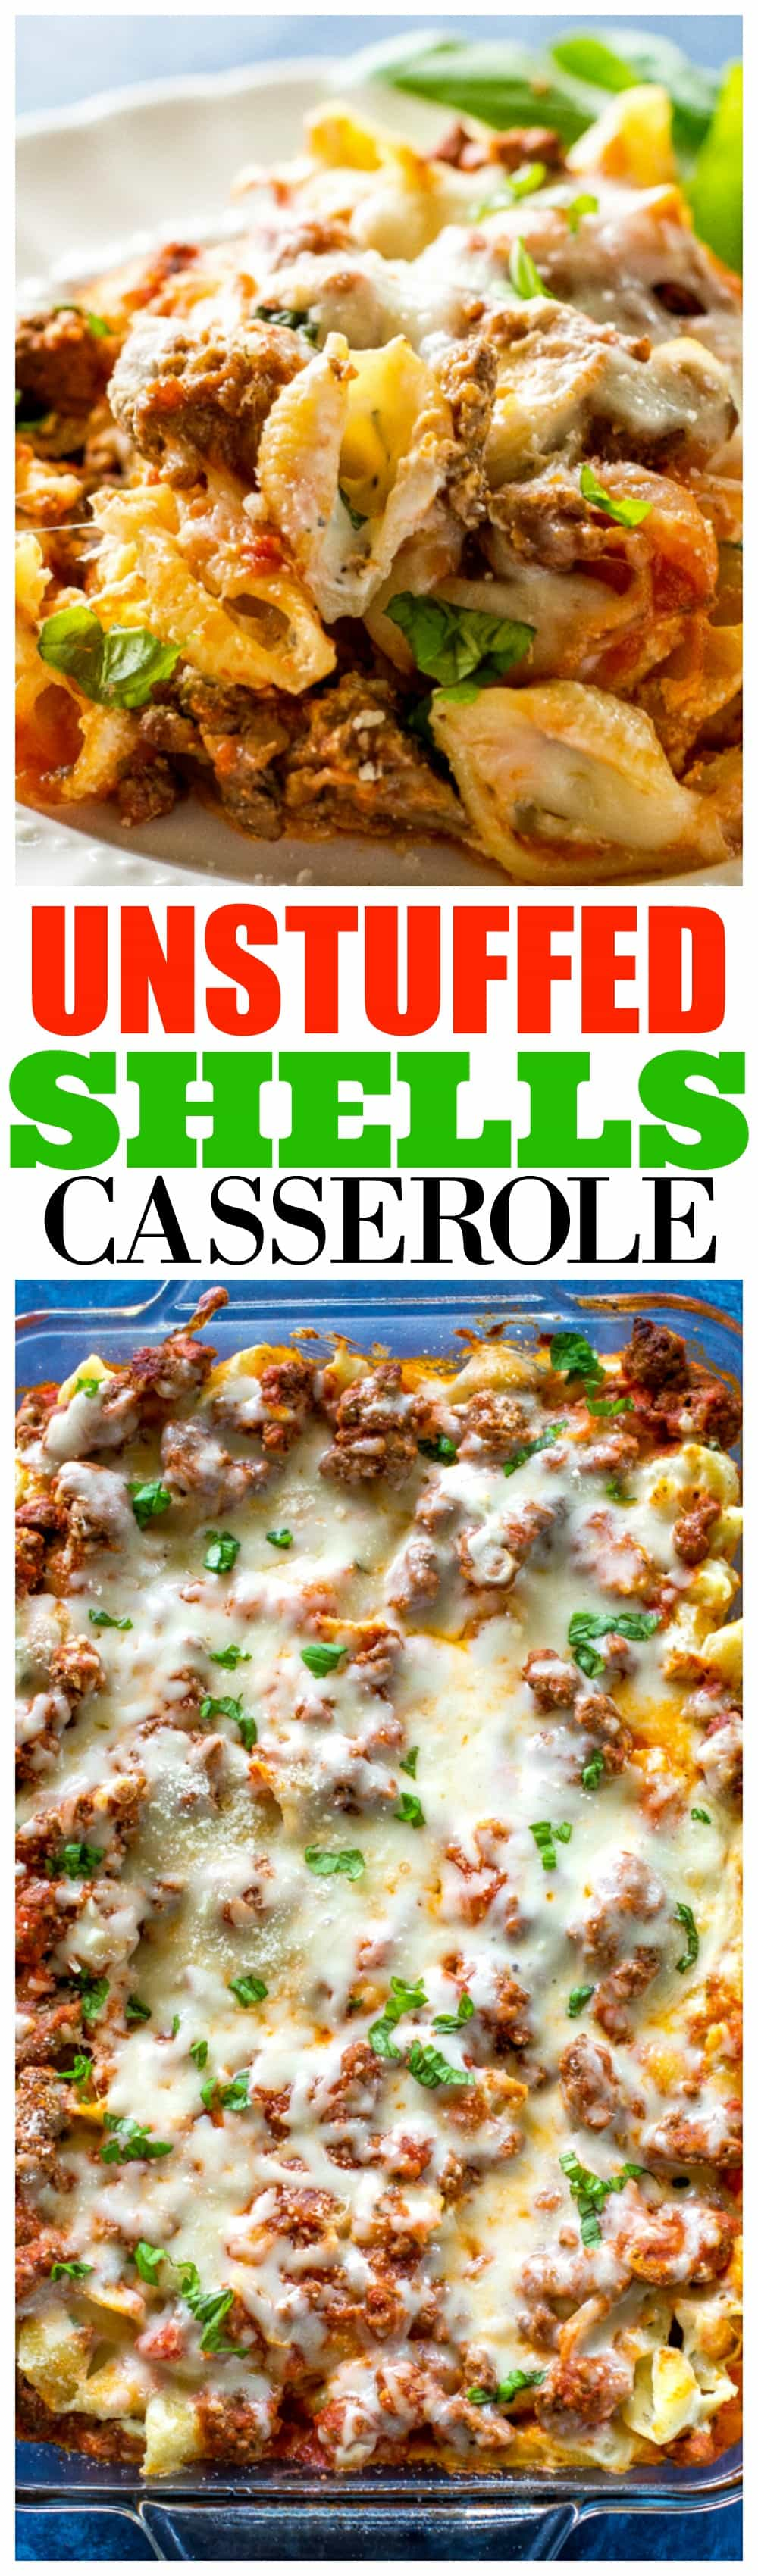 This Unstuffed Shells Casserole is all the flavors of stuffed shells without all the work. This can be made ahead of time and even frozen for an easy dinner. the-girl-who-ate-everything.com